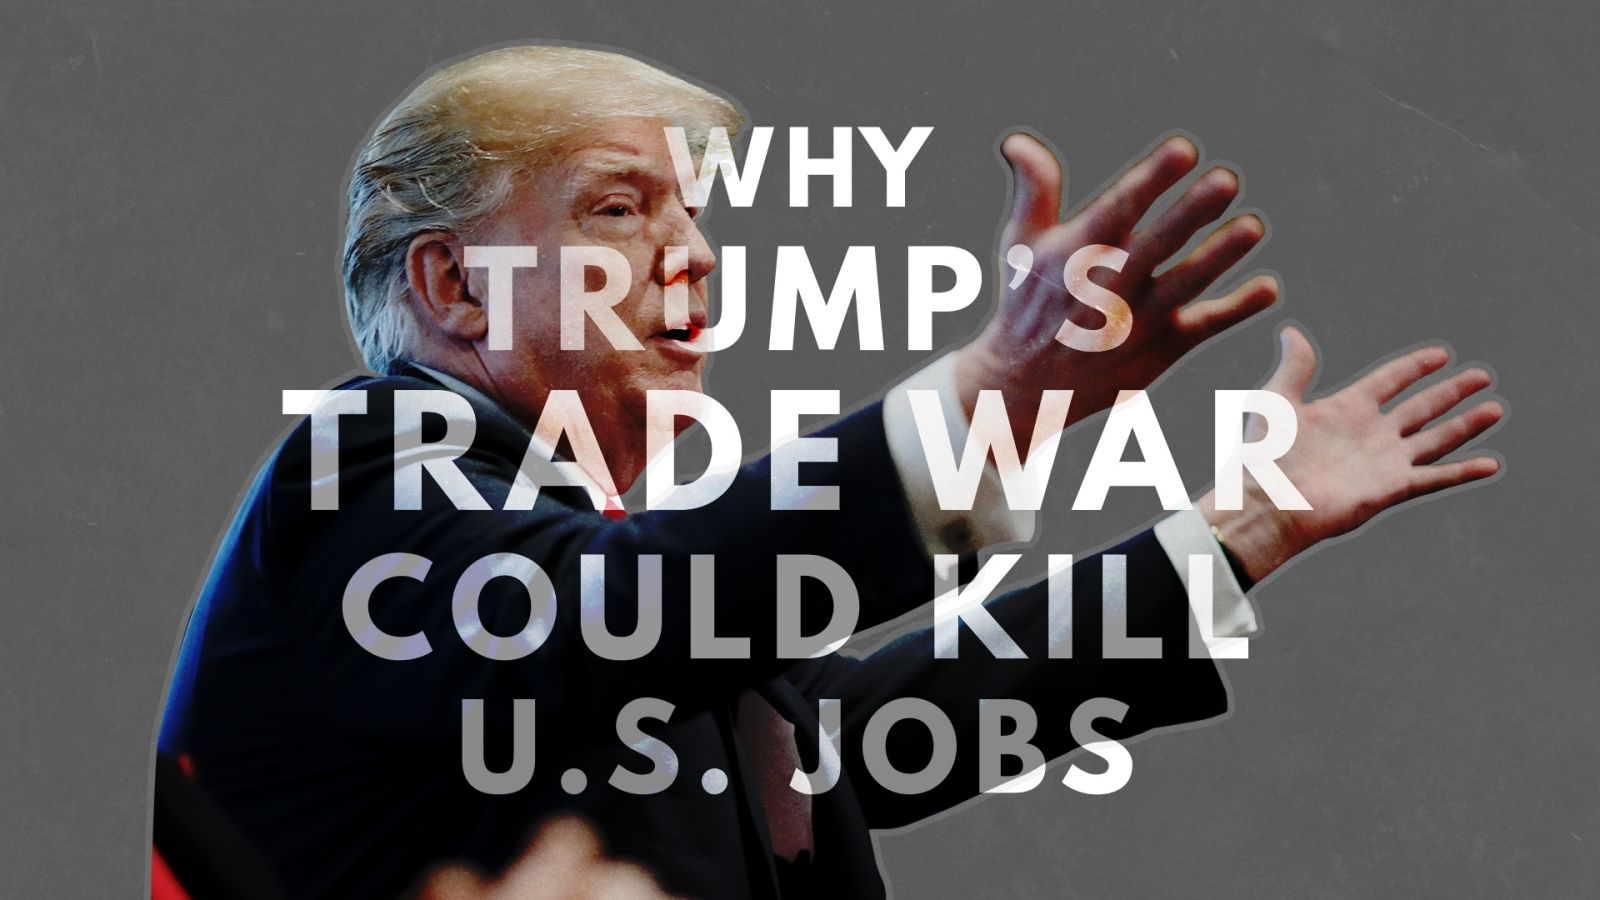 why-trumps-trade-war-could-kill-u-s-jobs